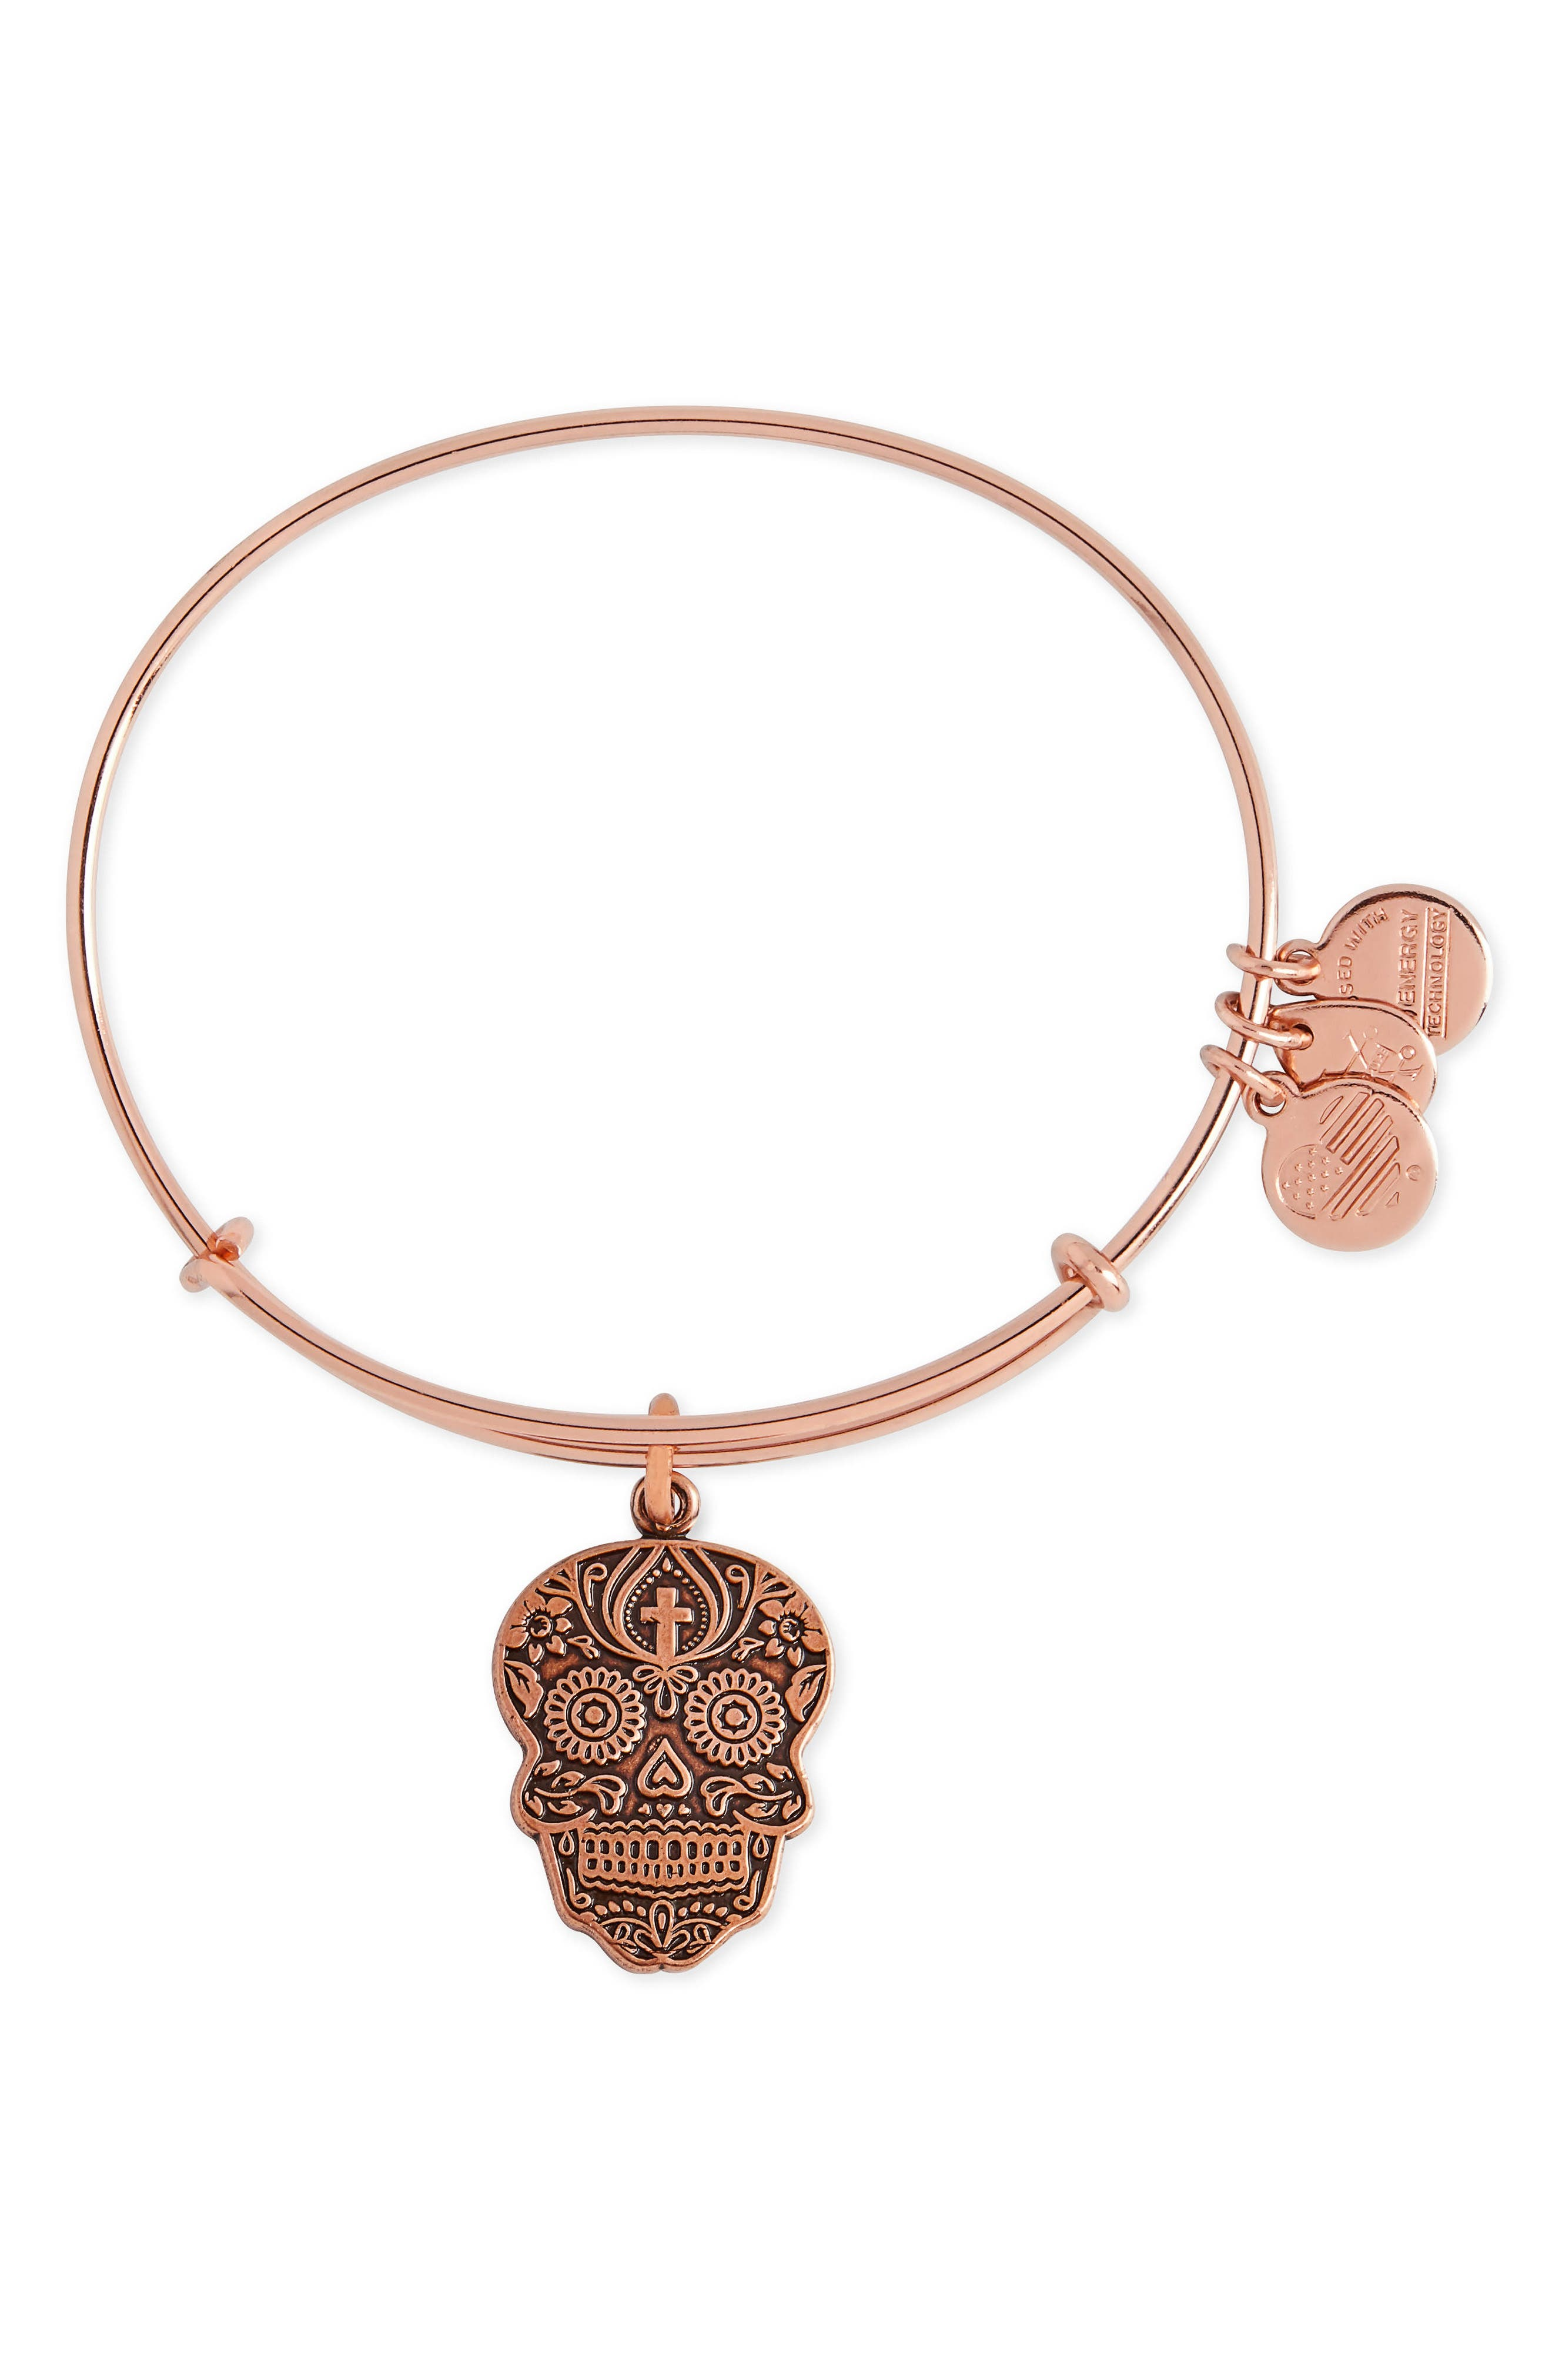 Alternate Image 1 Selected - Alex and Ani 'Calavera' Adjustable Wire Bangle (Nordstrom Exclusive)